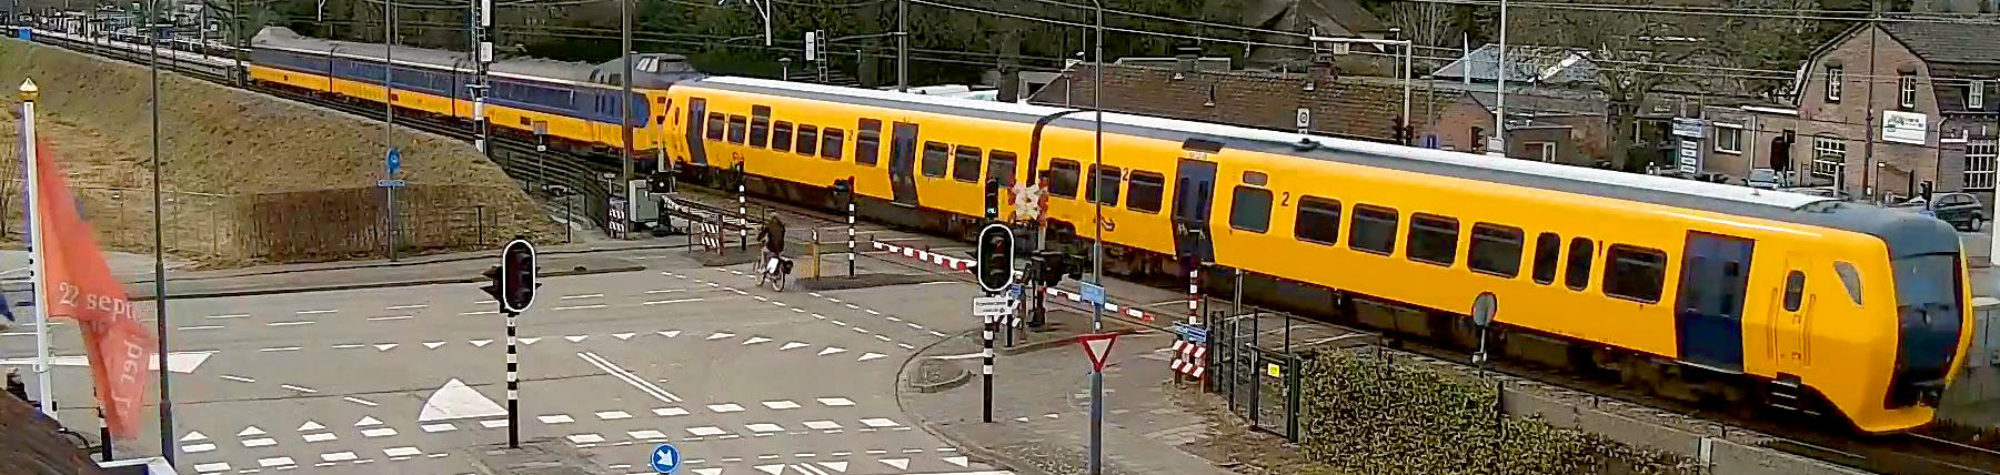 RailCam Netherlands